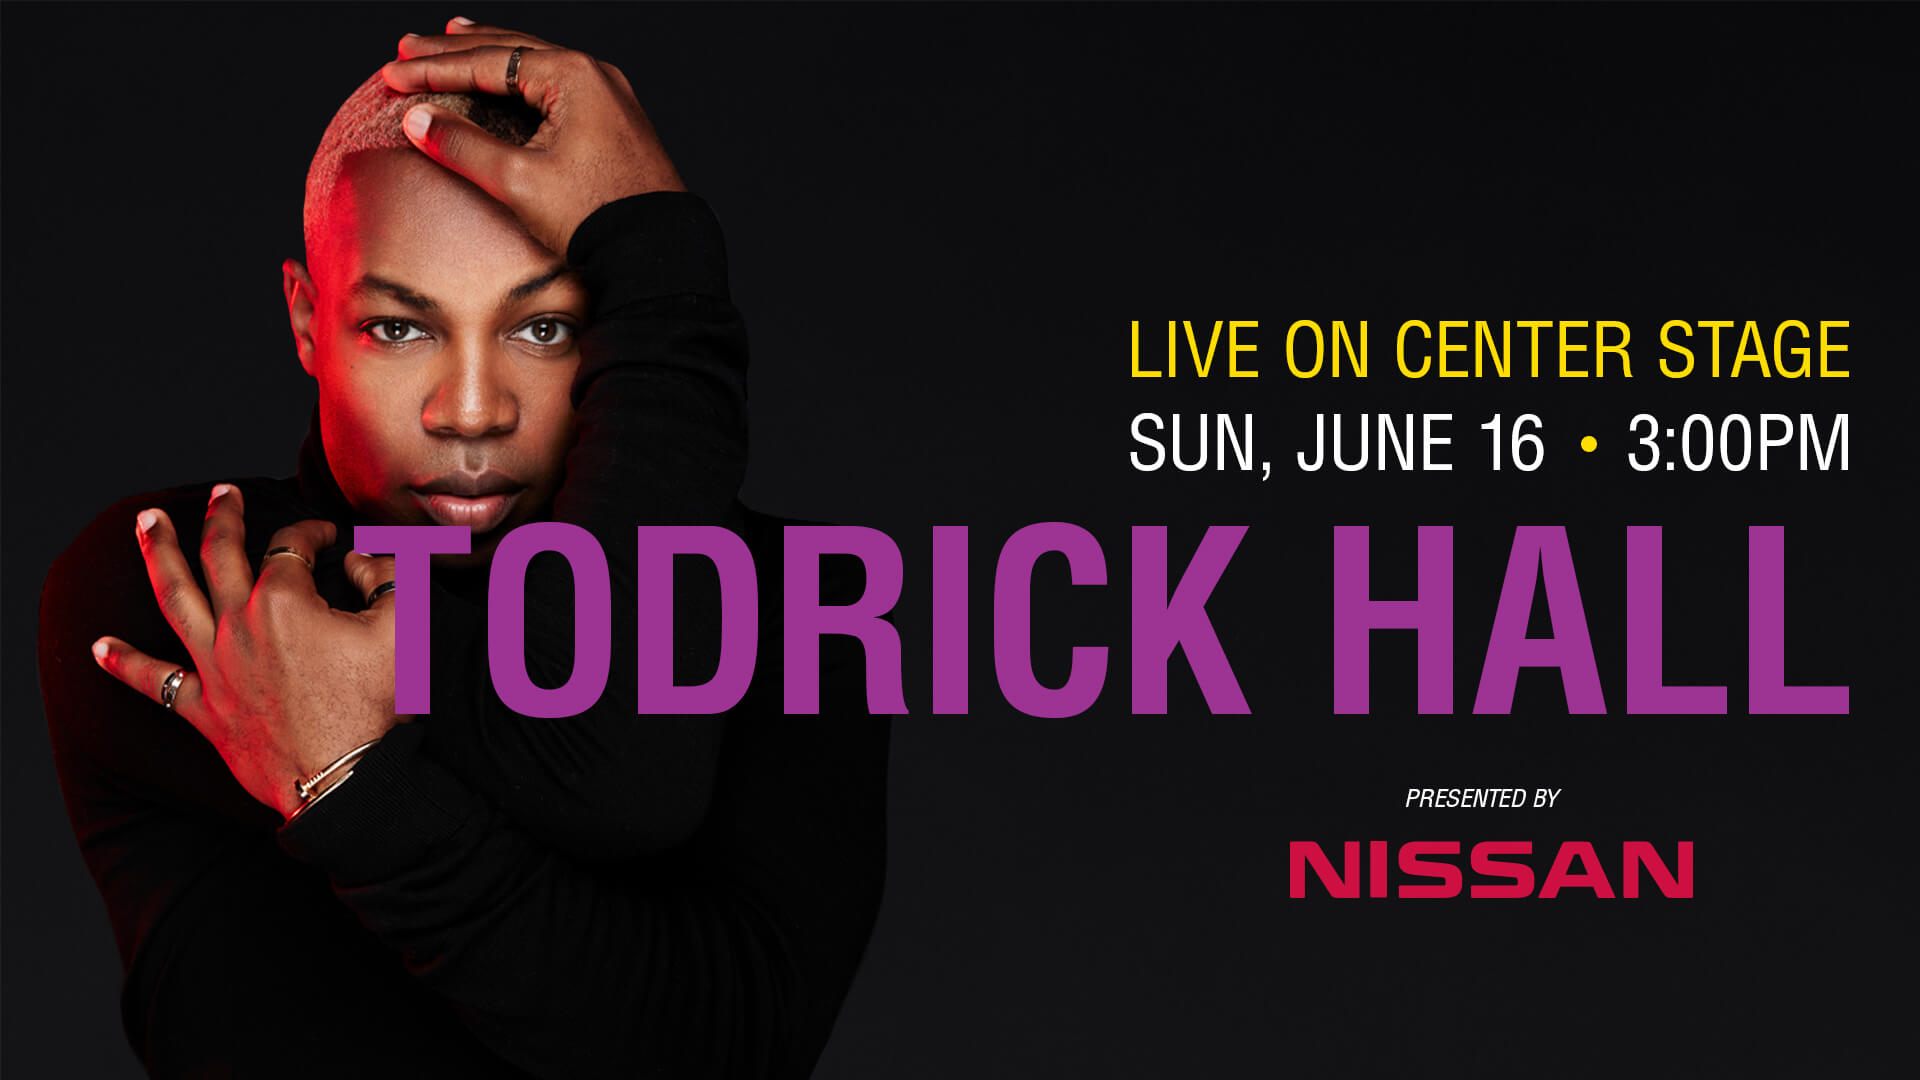 Todrick Hall Presented by Nissan Live on Center Stage